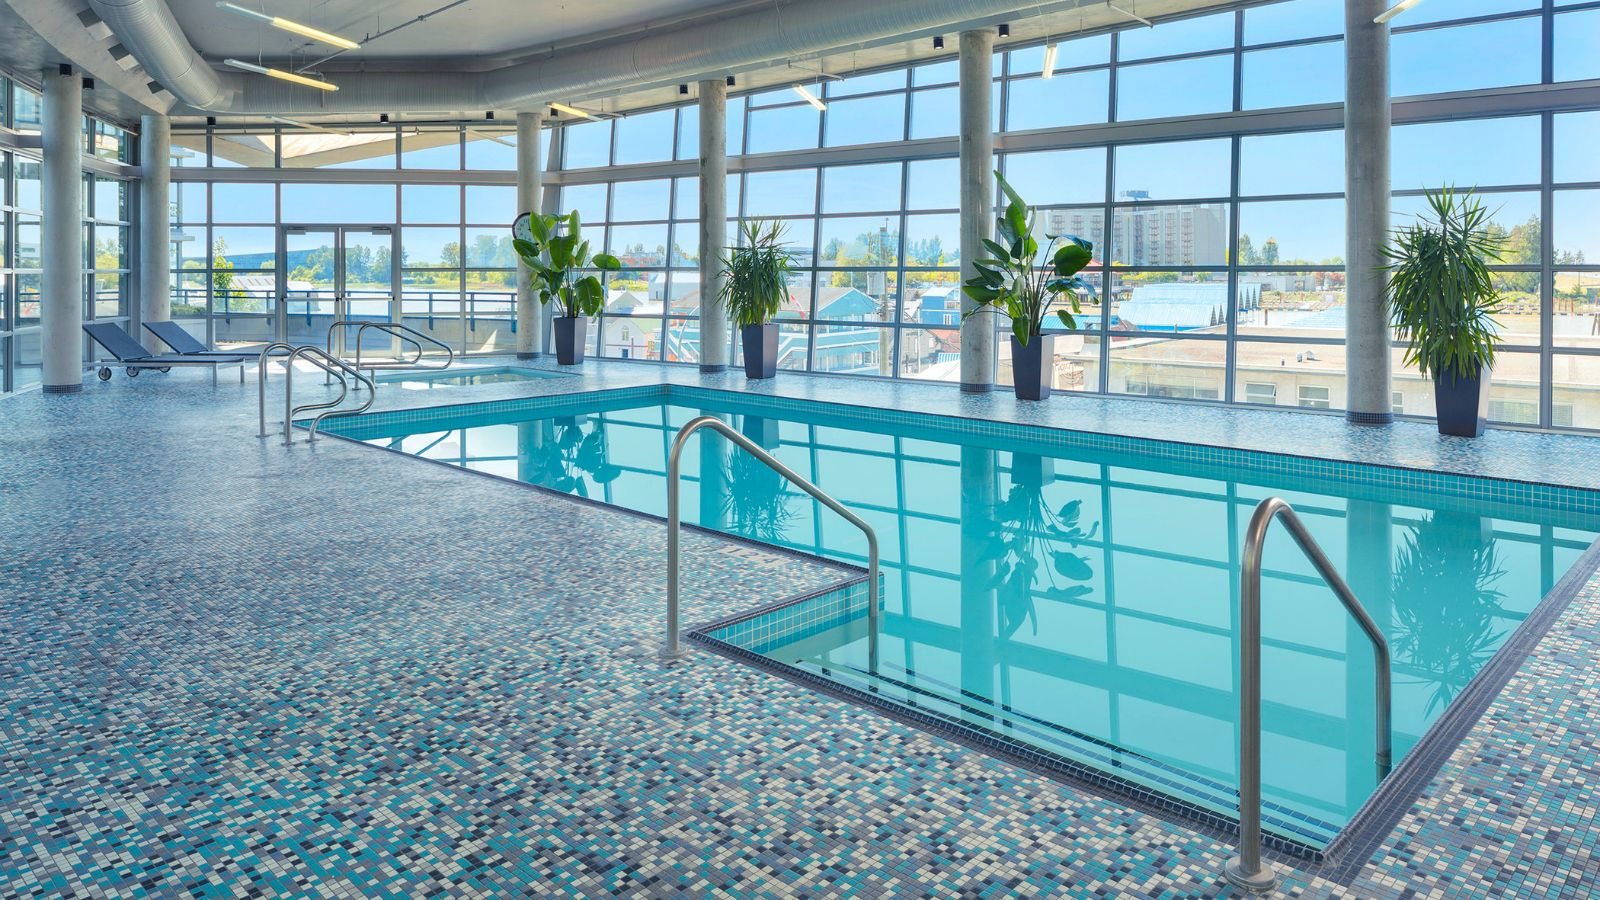 Vancouver Airport Hotel Amenities - Pool